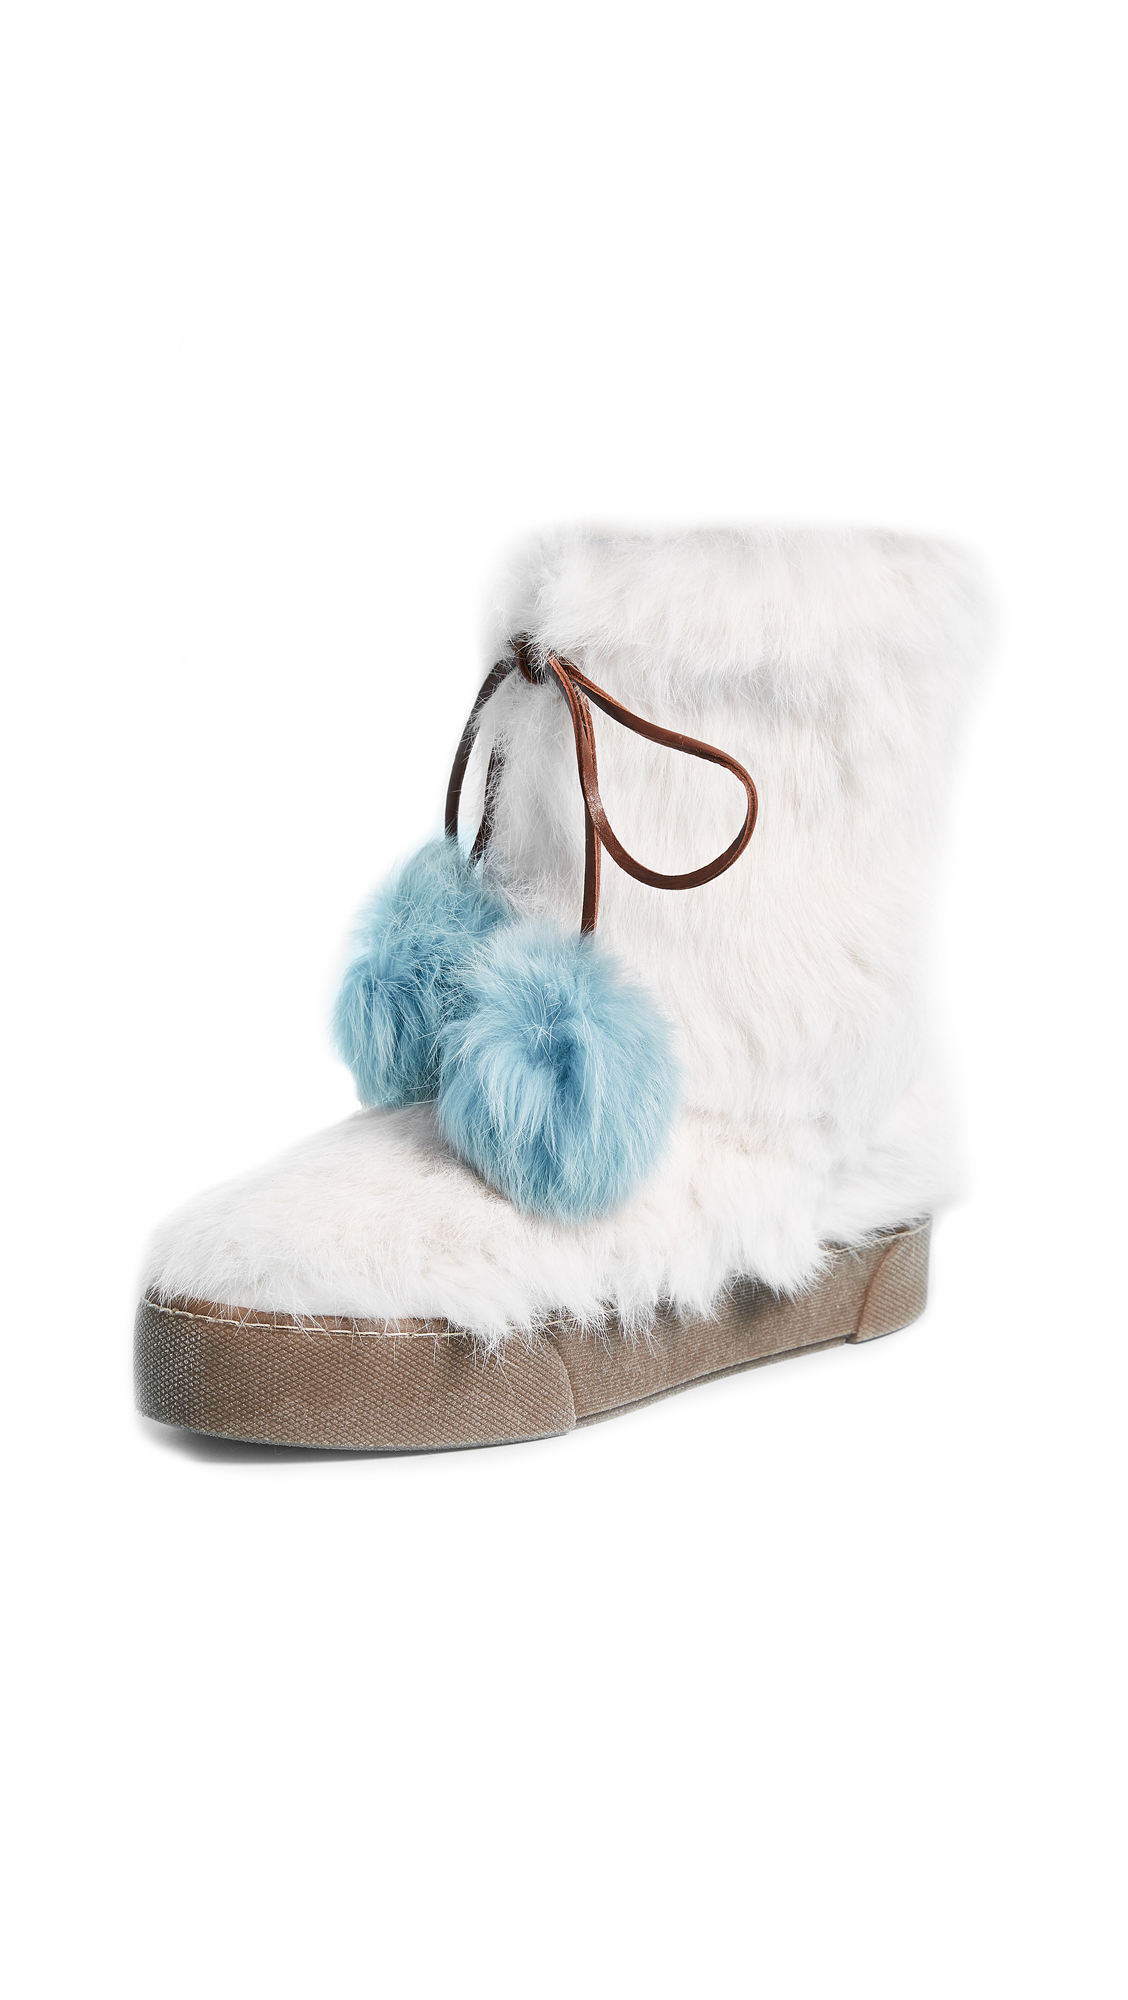 Frances Valentine Samantha Fur Boots - White/Blue